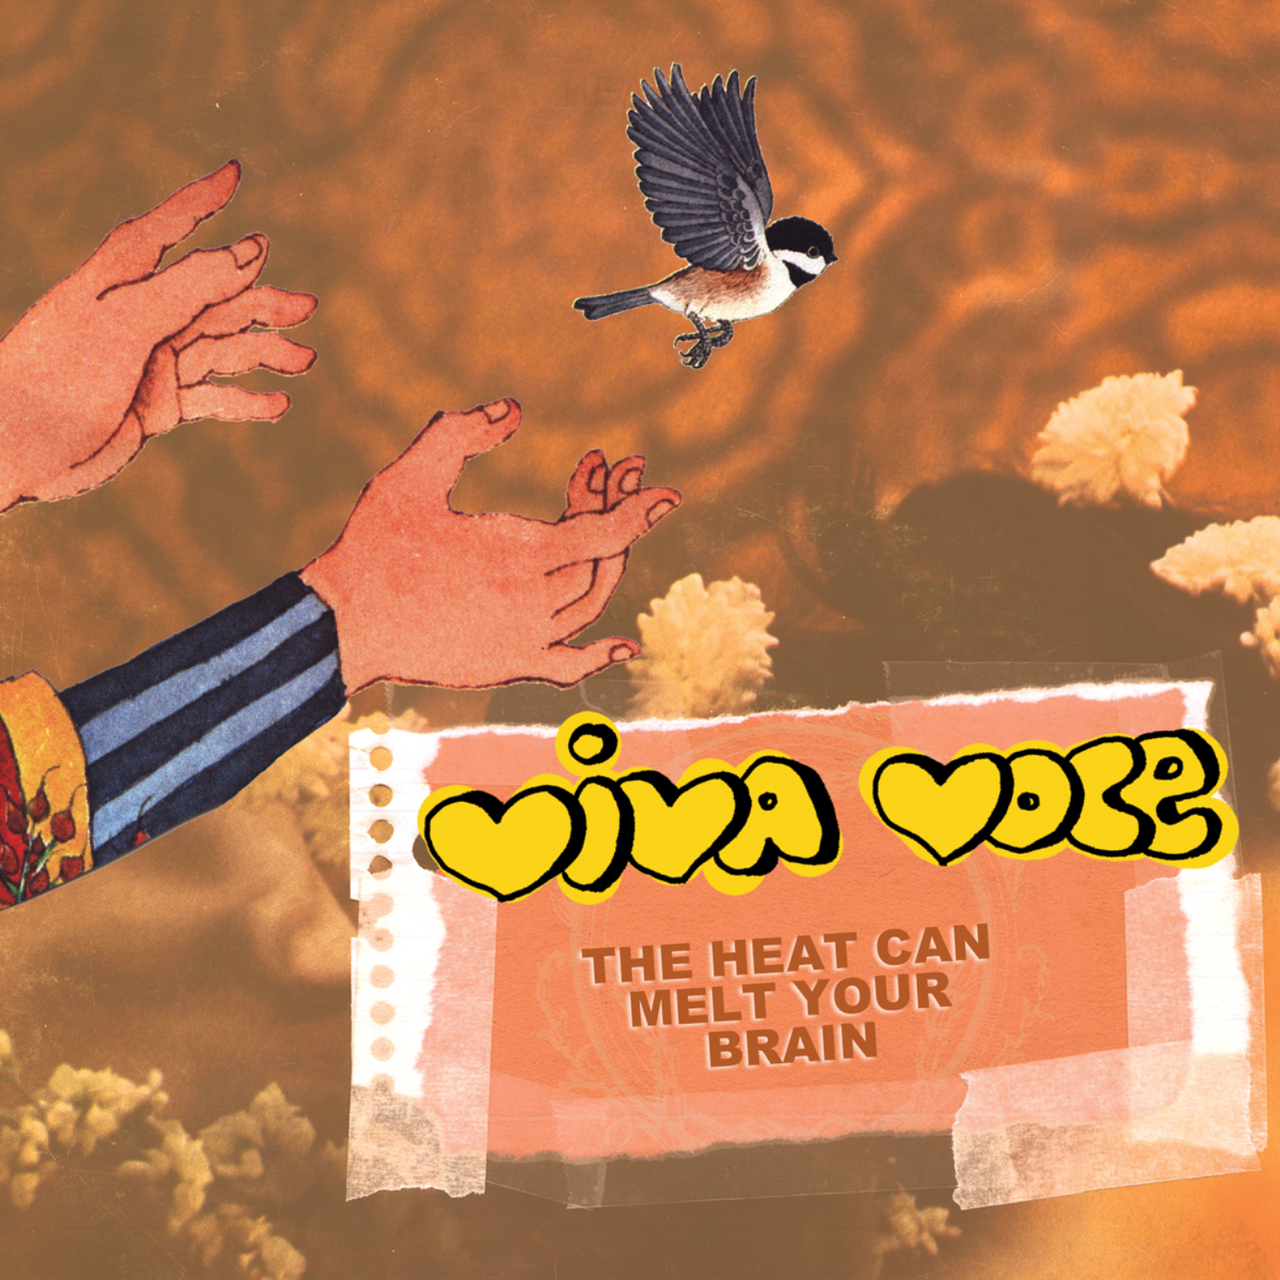 Viva Voce's Lovers Lead the Way! / Heat Can Melt Your Brain is out now.